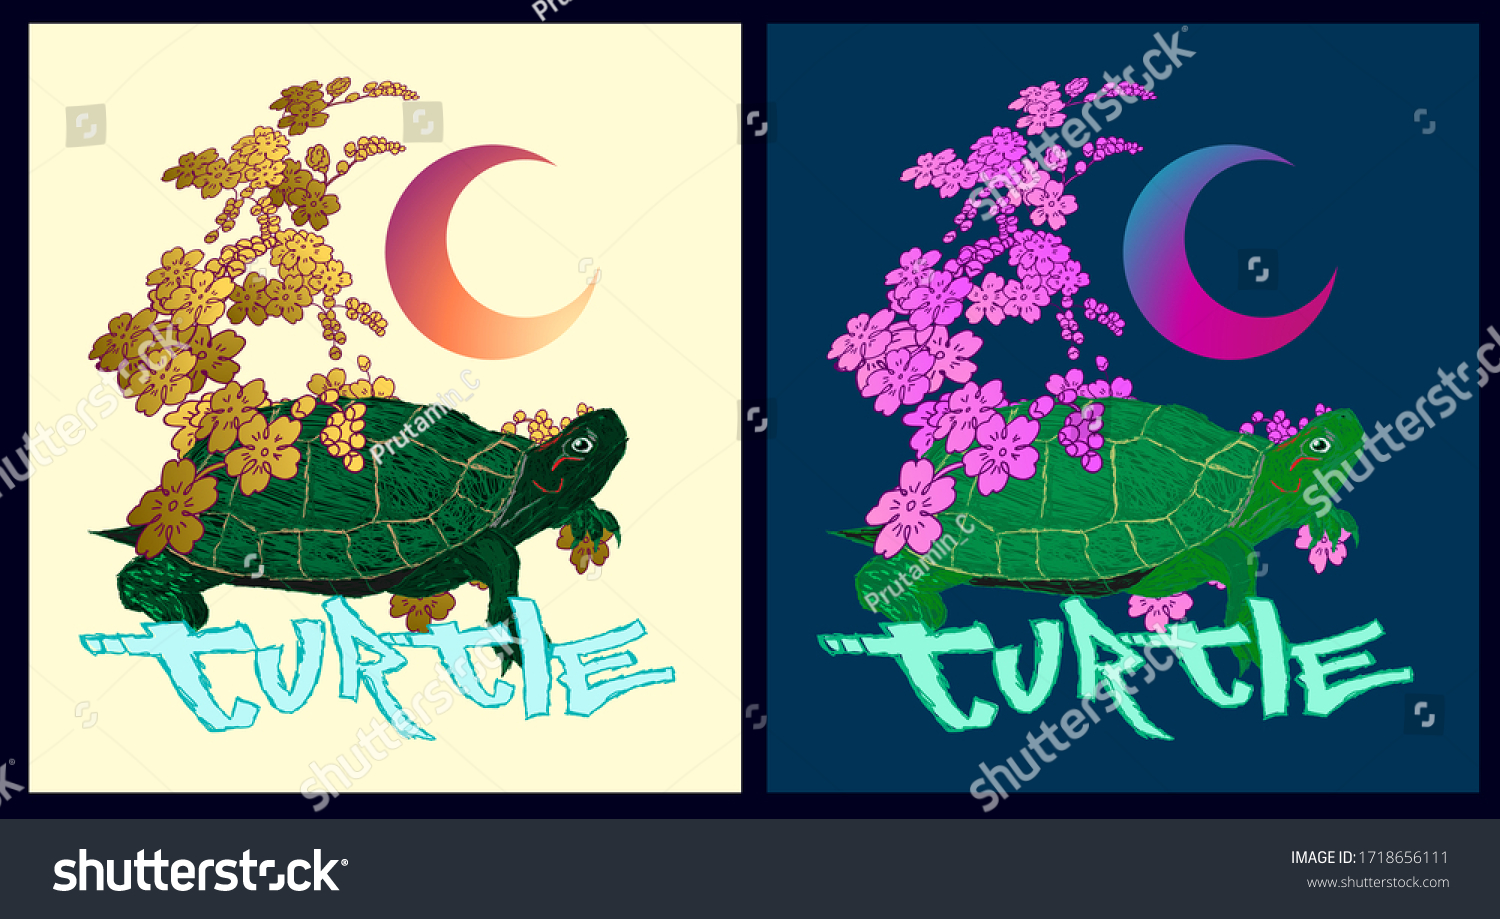 turtle illustration design for sukajan is mean japan traditional cloth or t-shirt with digital hand drawn Embroidery Men T-shirts Summer Casual Short Sleeve Hip Hop T Shirt Streetwear